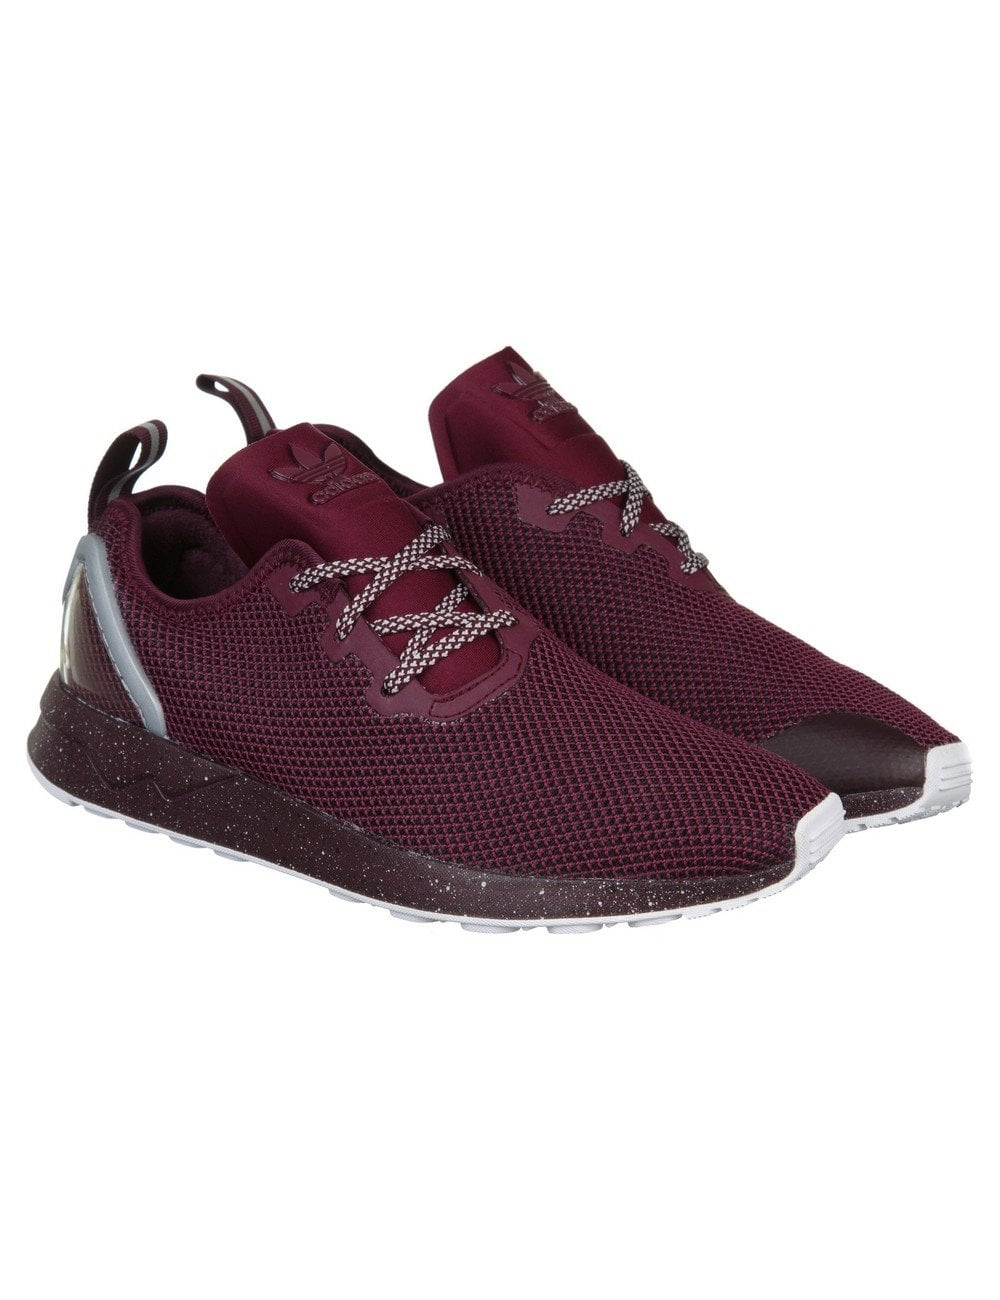 official photos a08bc cbc3b ZX Flux Racer ASYM Shoes - Maroon